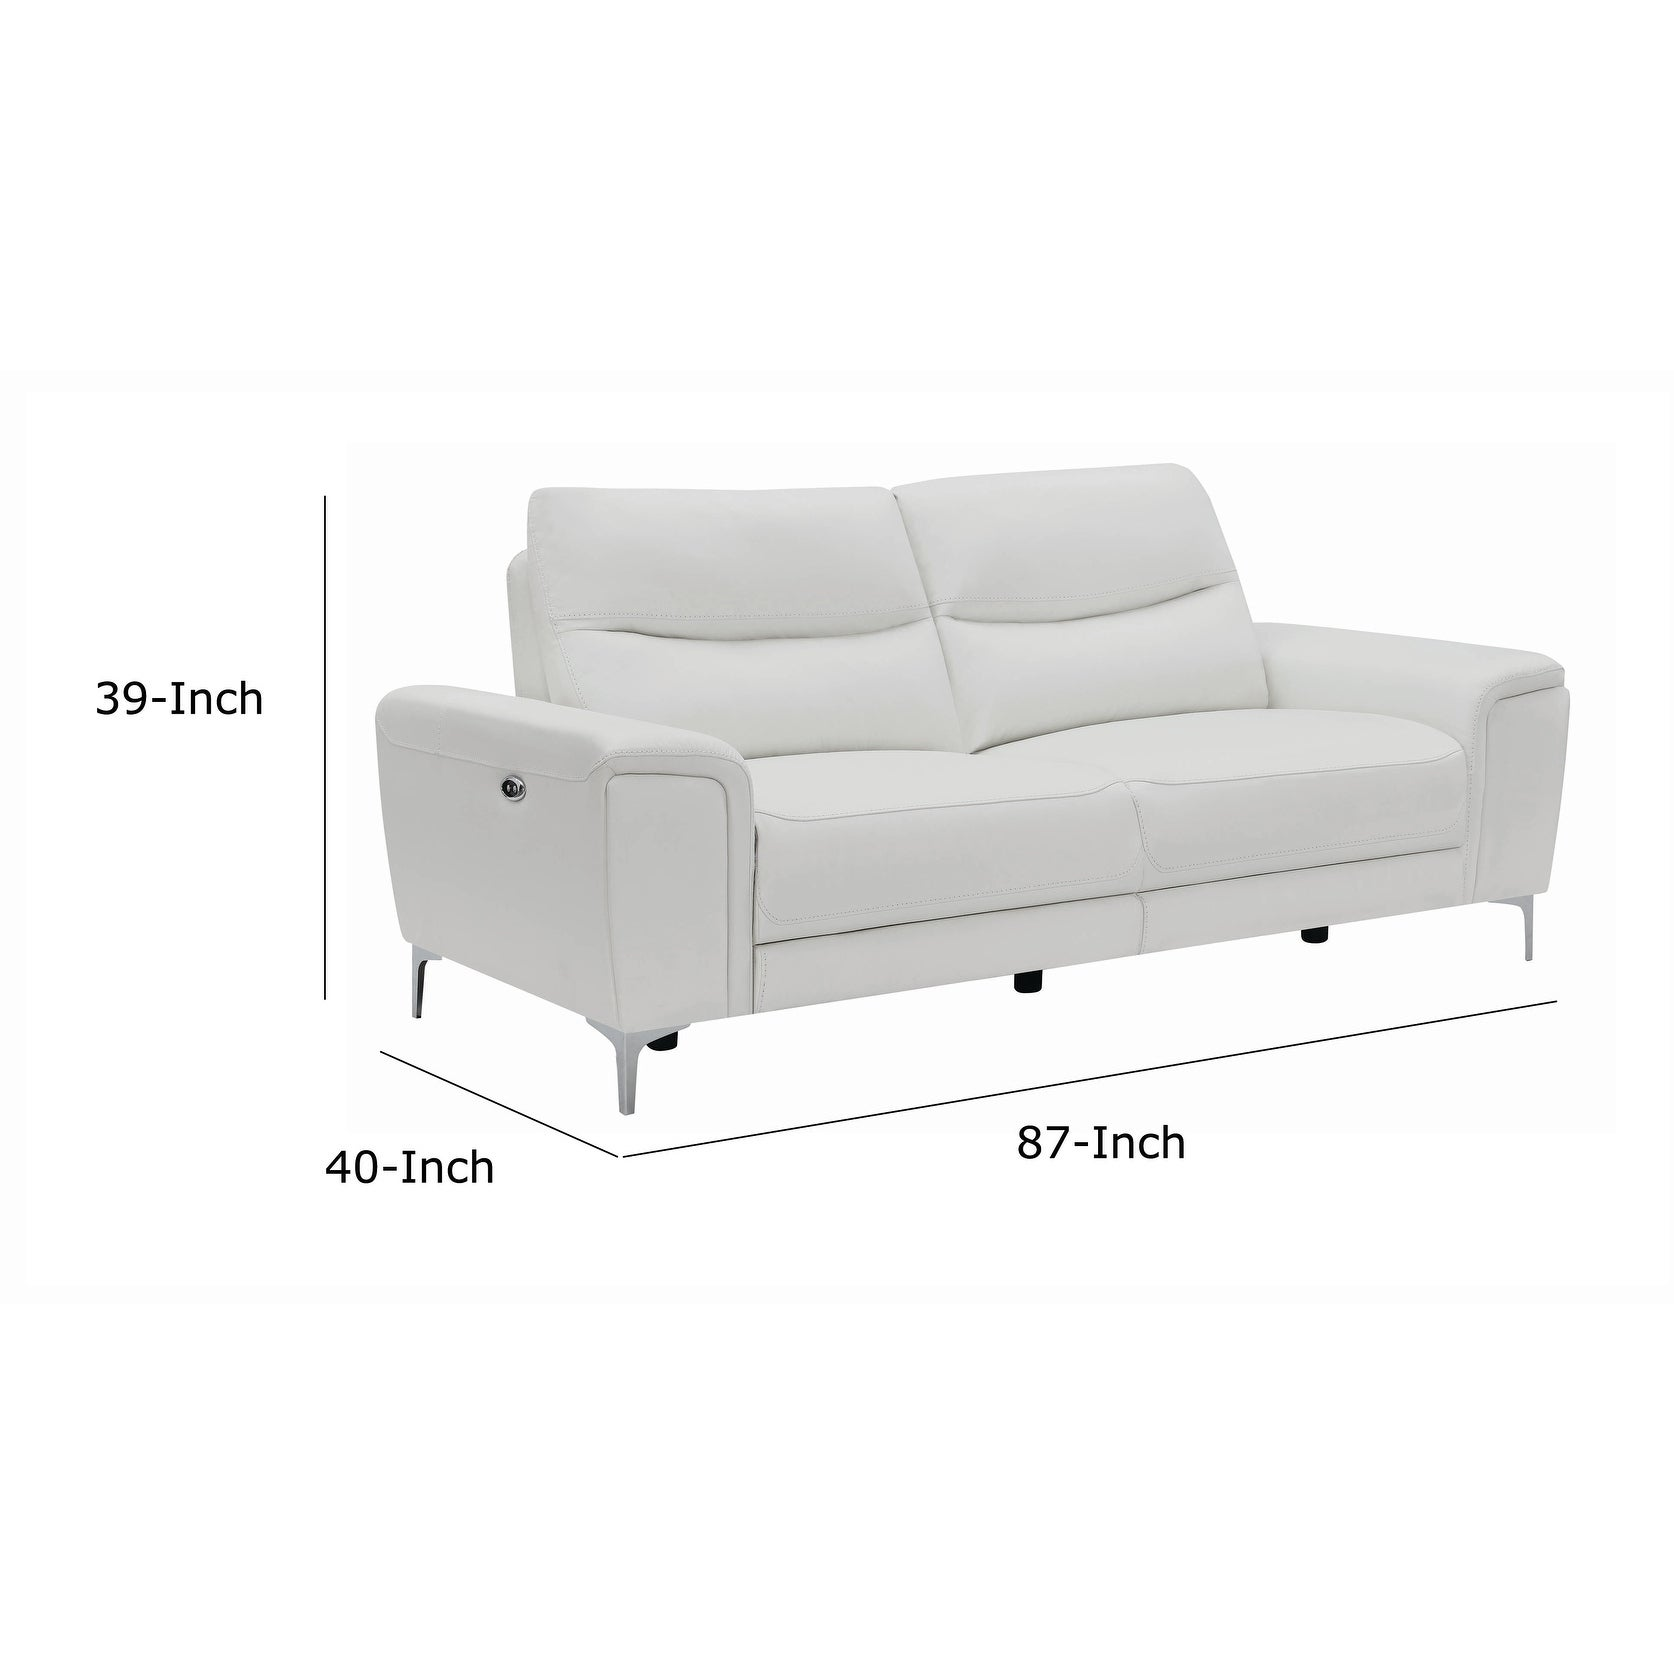 Terrific Wood And Leatherette Dual Reclining Sofa With Usb Port White Camellatalisay Diy Chair Ideas Camellatalisaycom